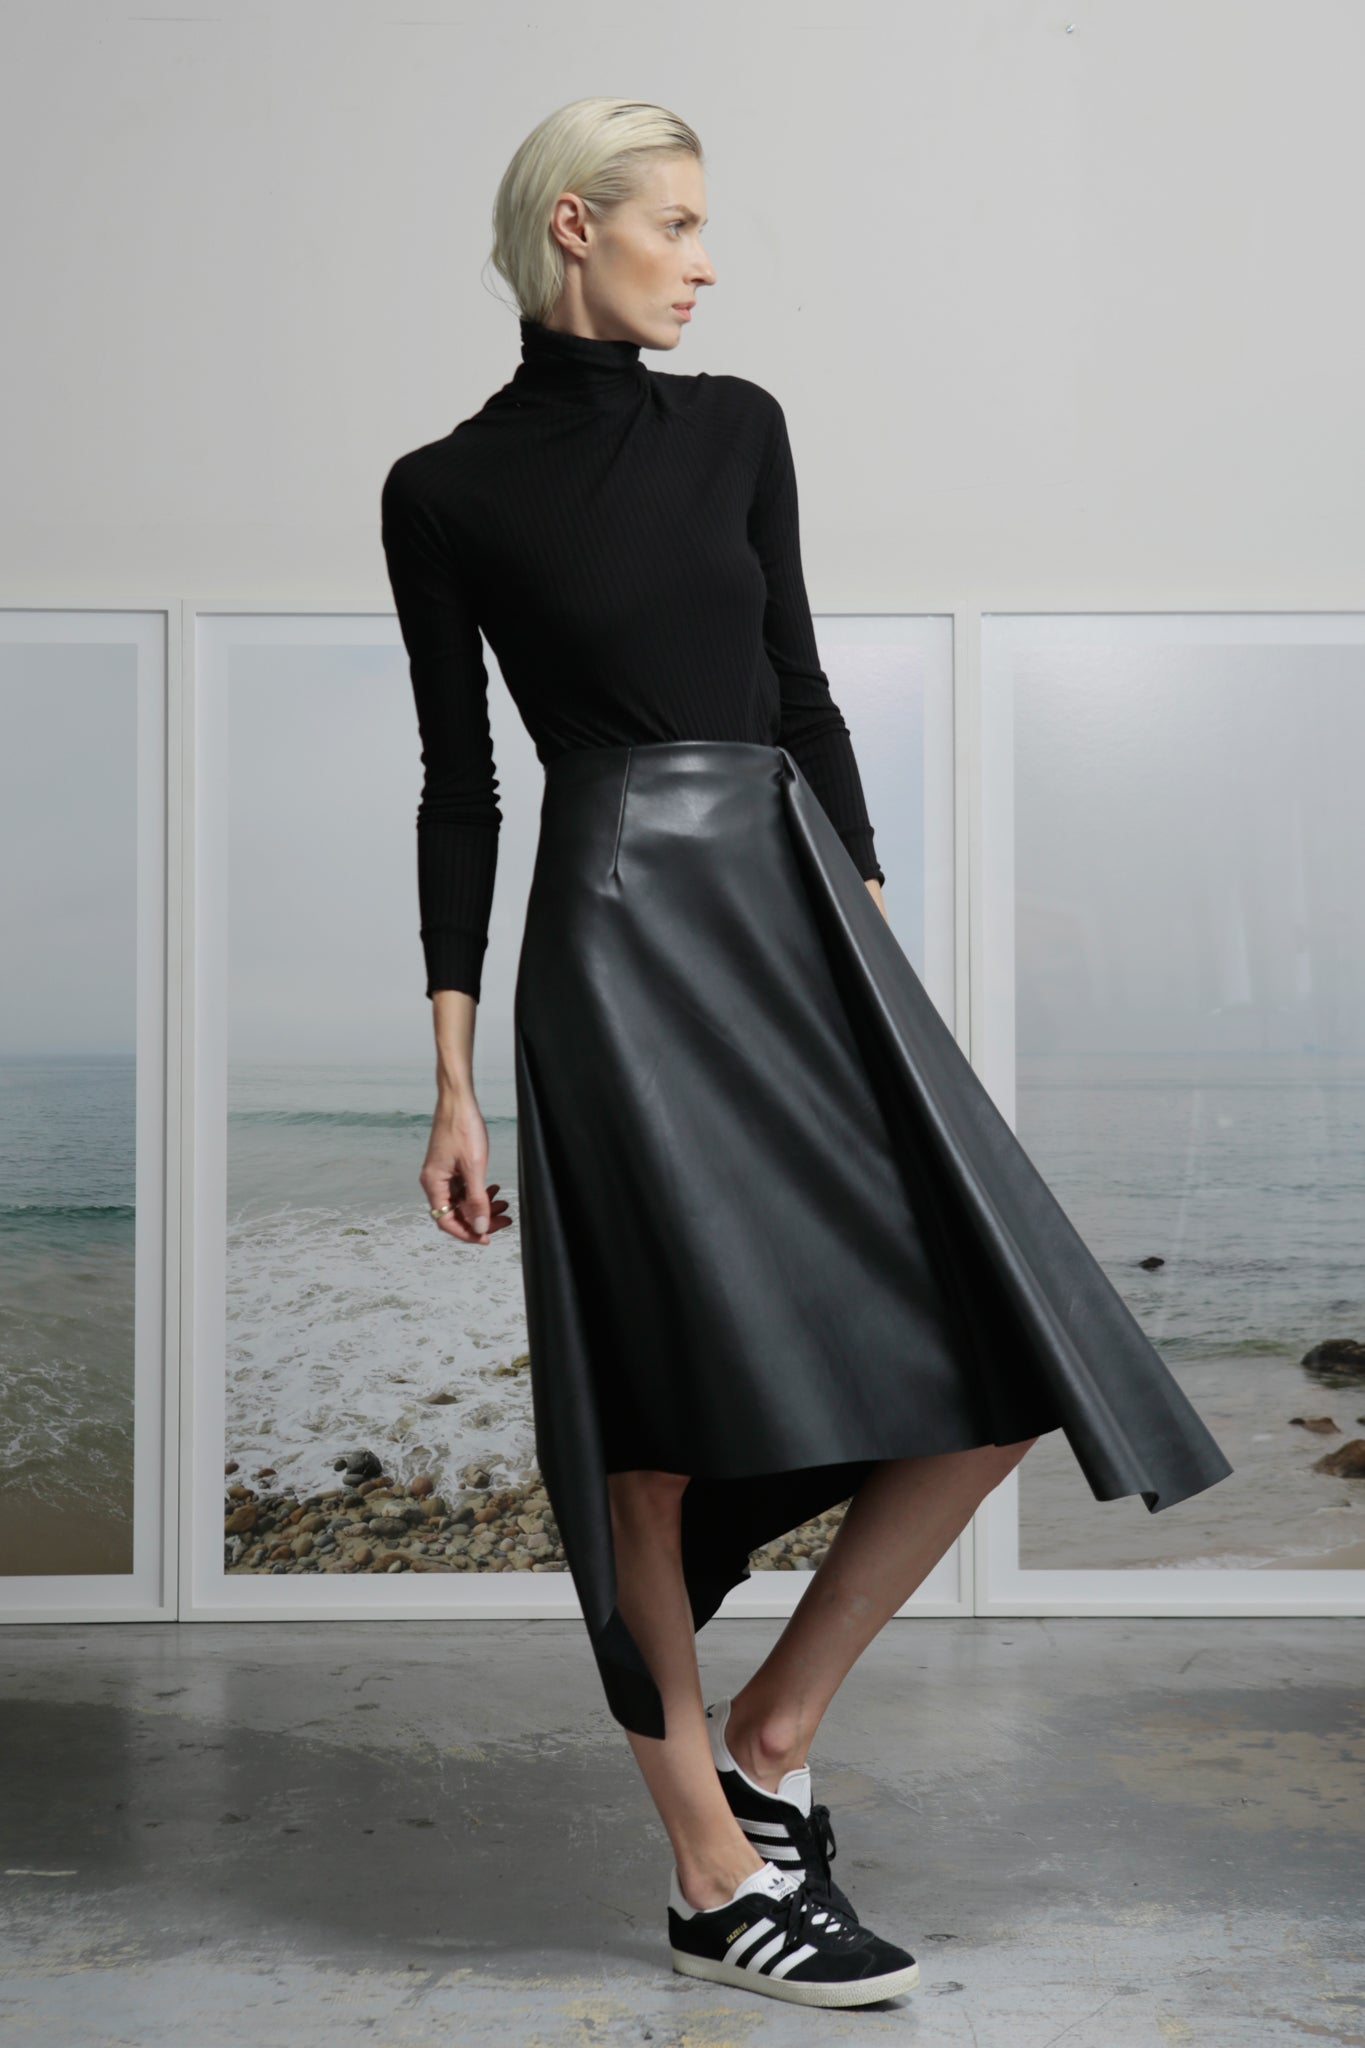 JOSEPHINE SKIRT - VEGAN LEATHER